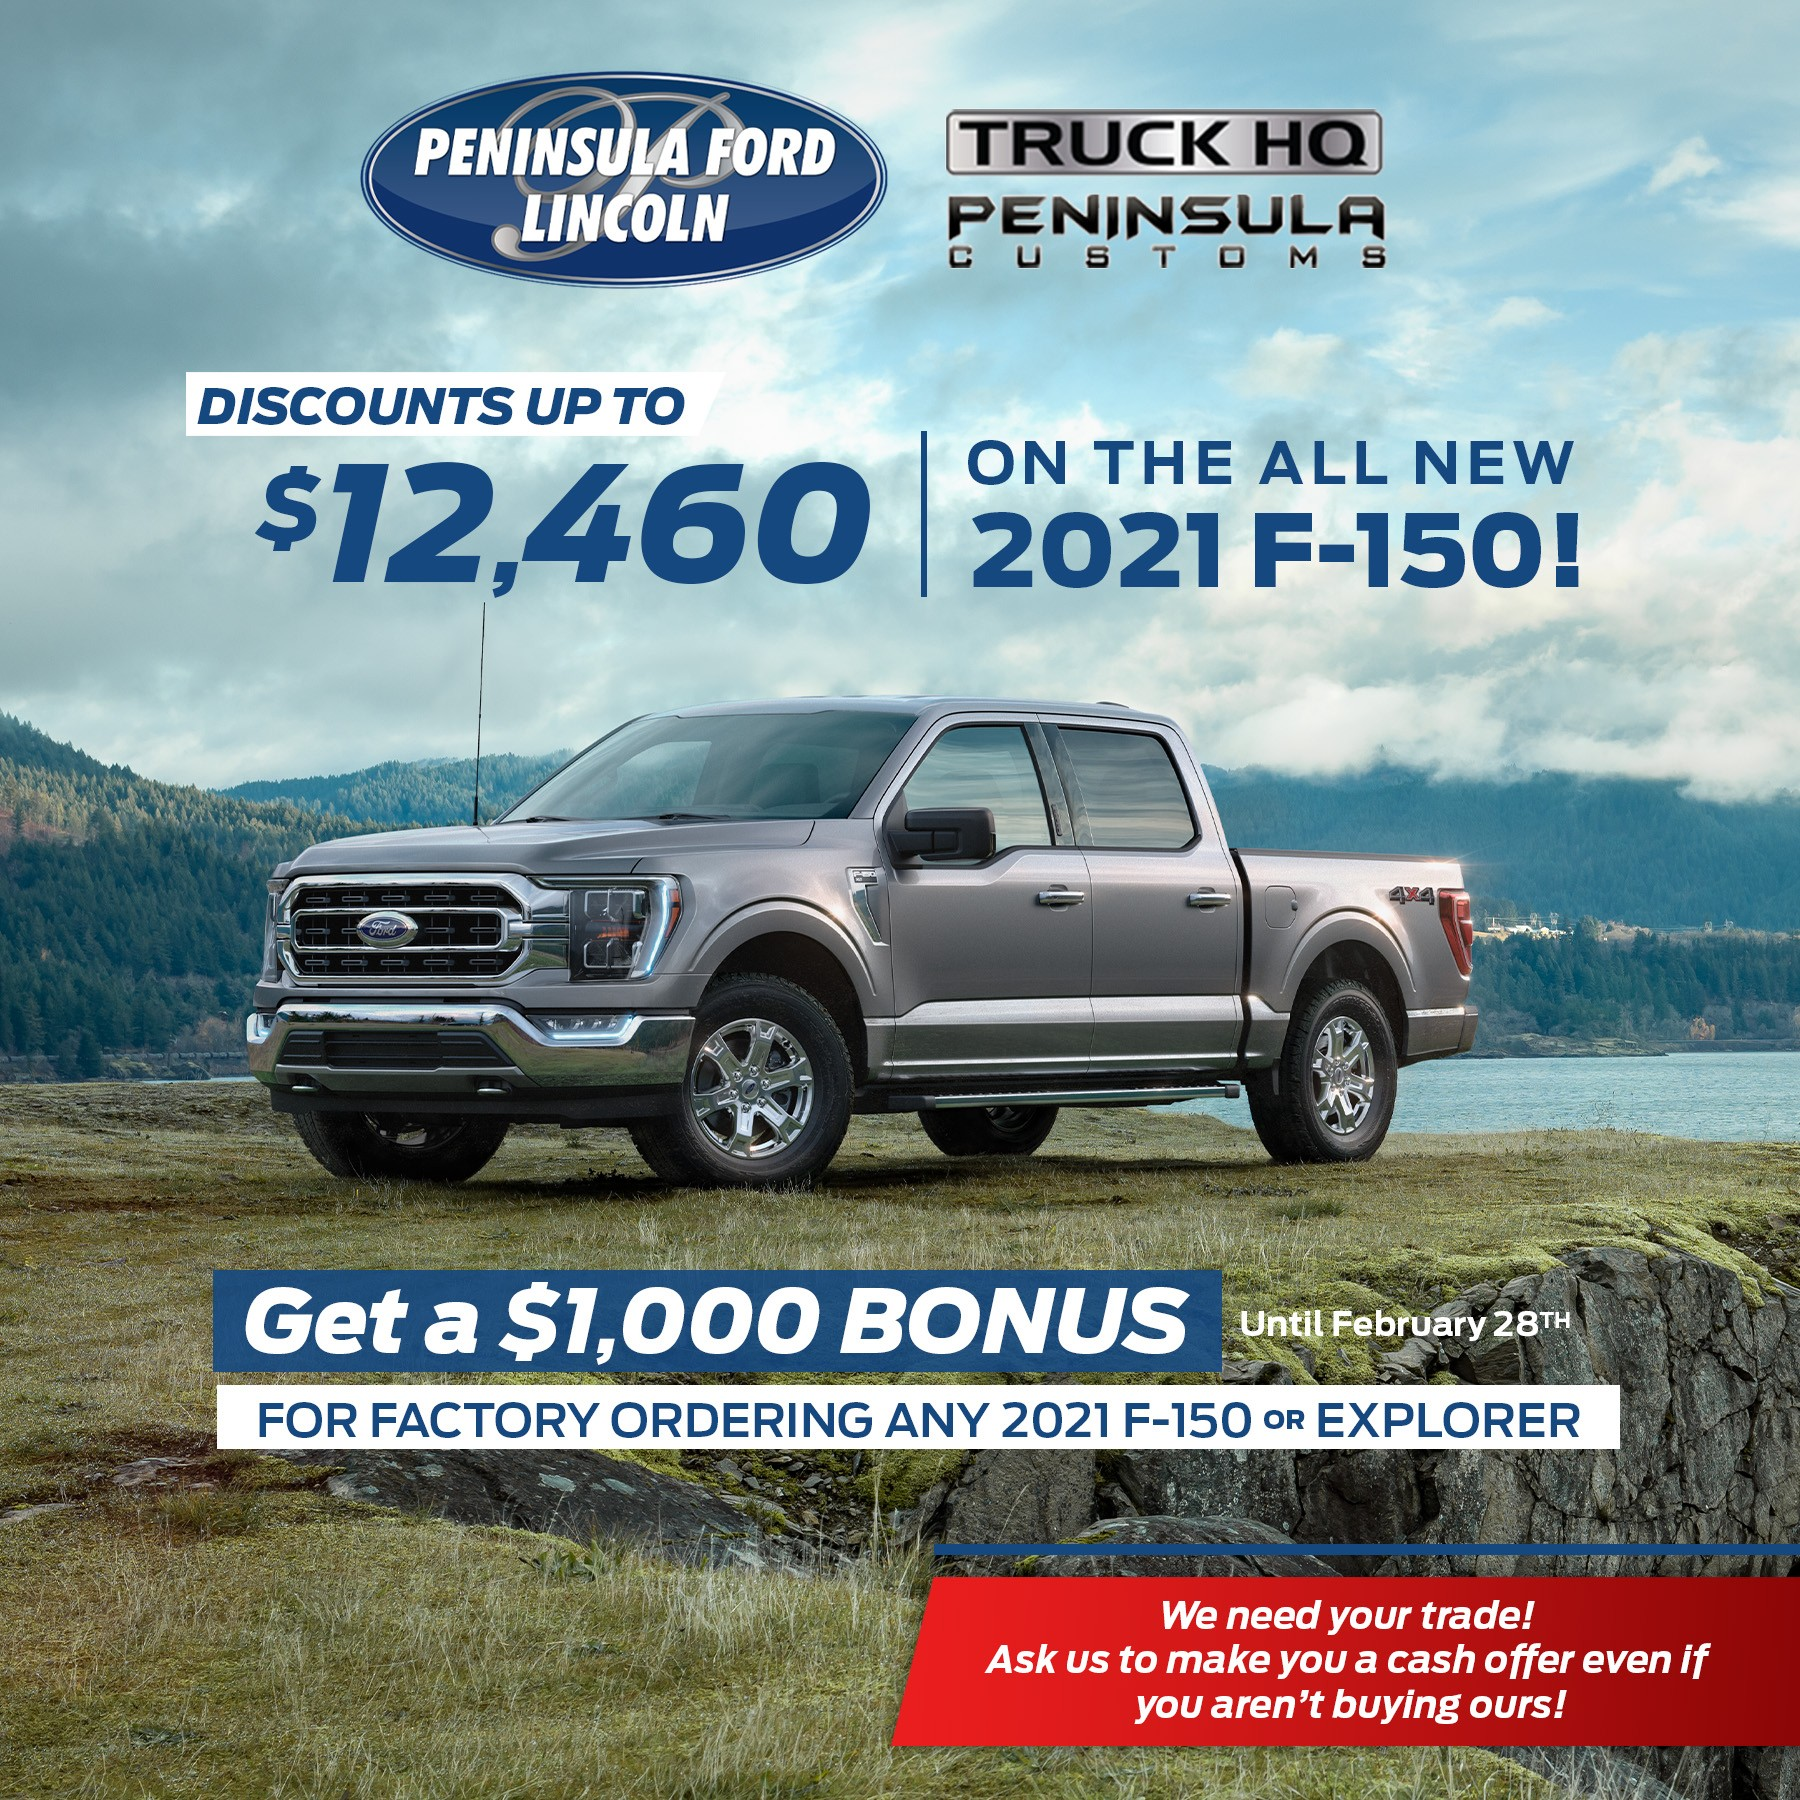 Discounts up to $12,460 On All The New